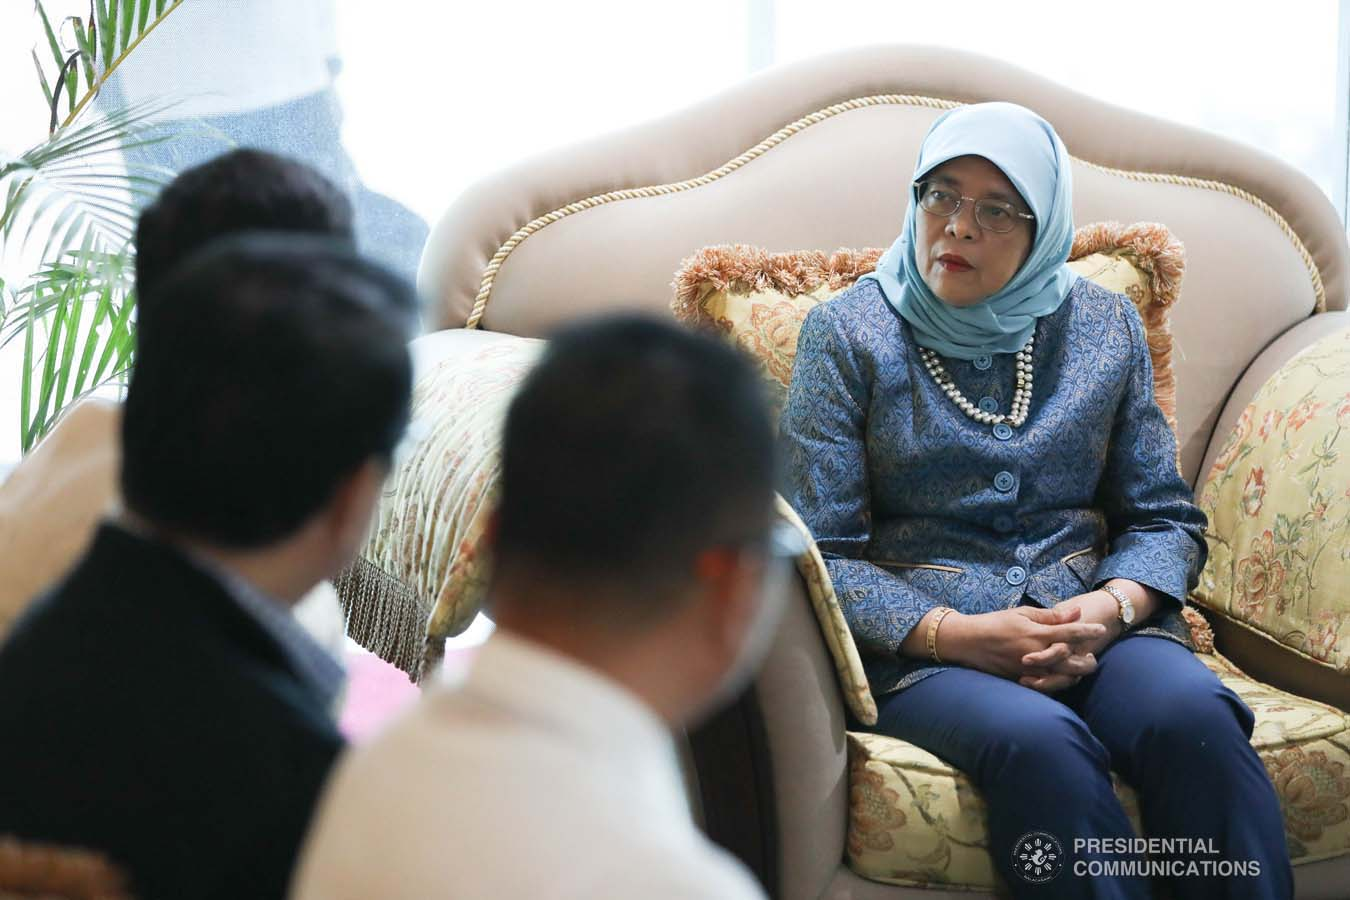 Republic of Singapore President Halimah Yacob discusses matters with Davao City Vice Mayor Sebastian Duterte during a meeting at the Davao International Airport on September 10, 2019. KARL NORMAN ALONZO/PRESIDENTIAL PHOTO